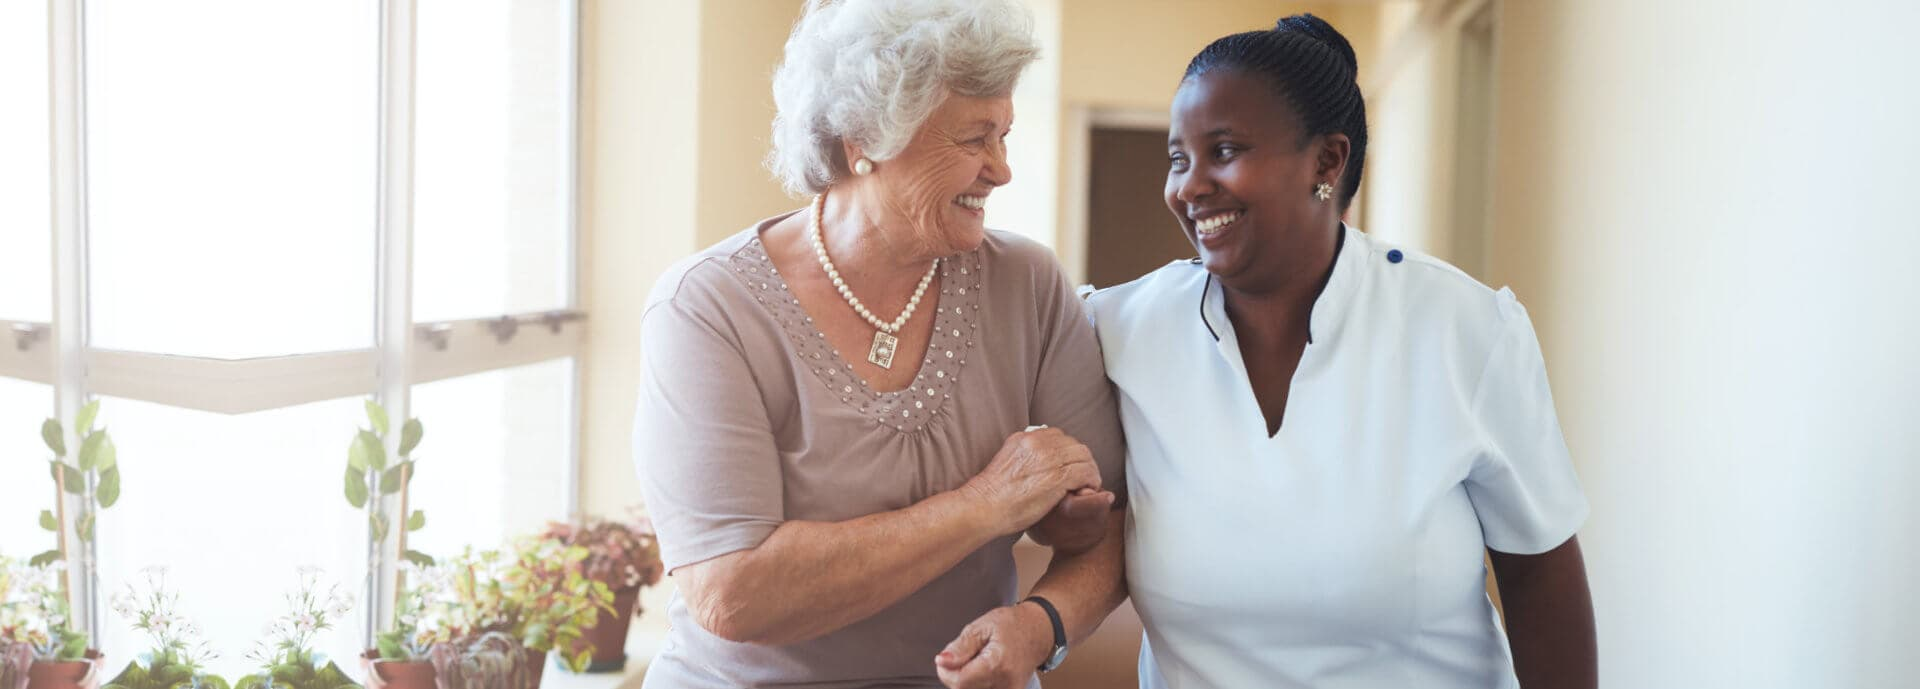 senior woman walking with her caregiver